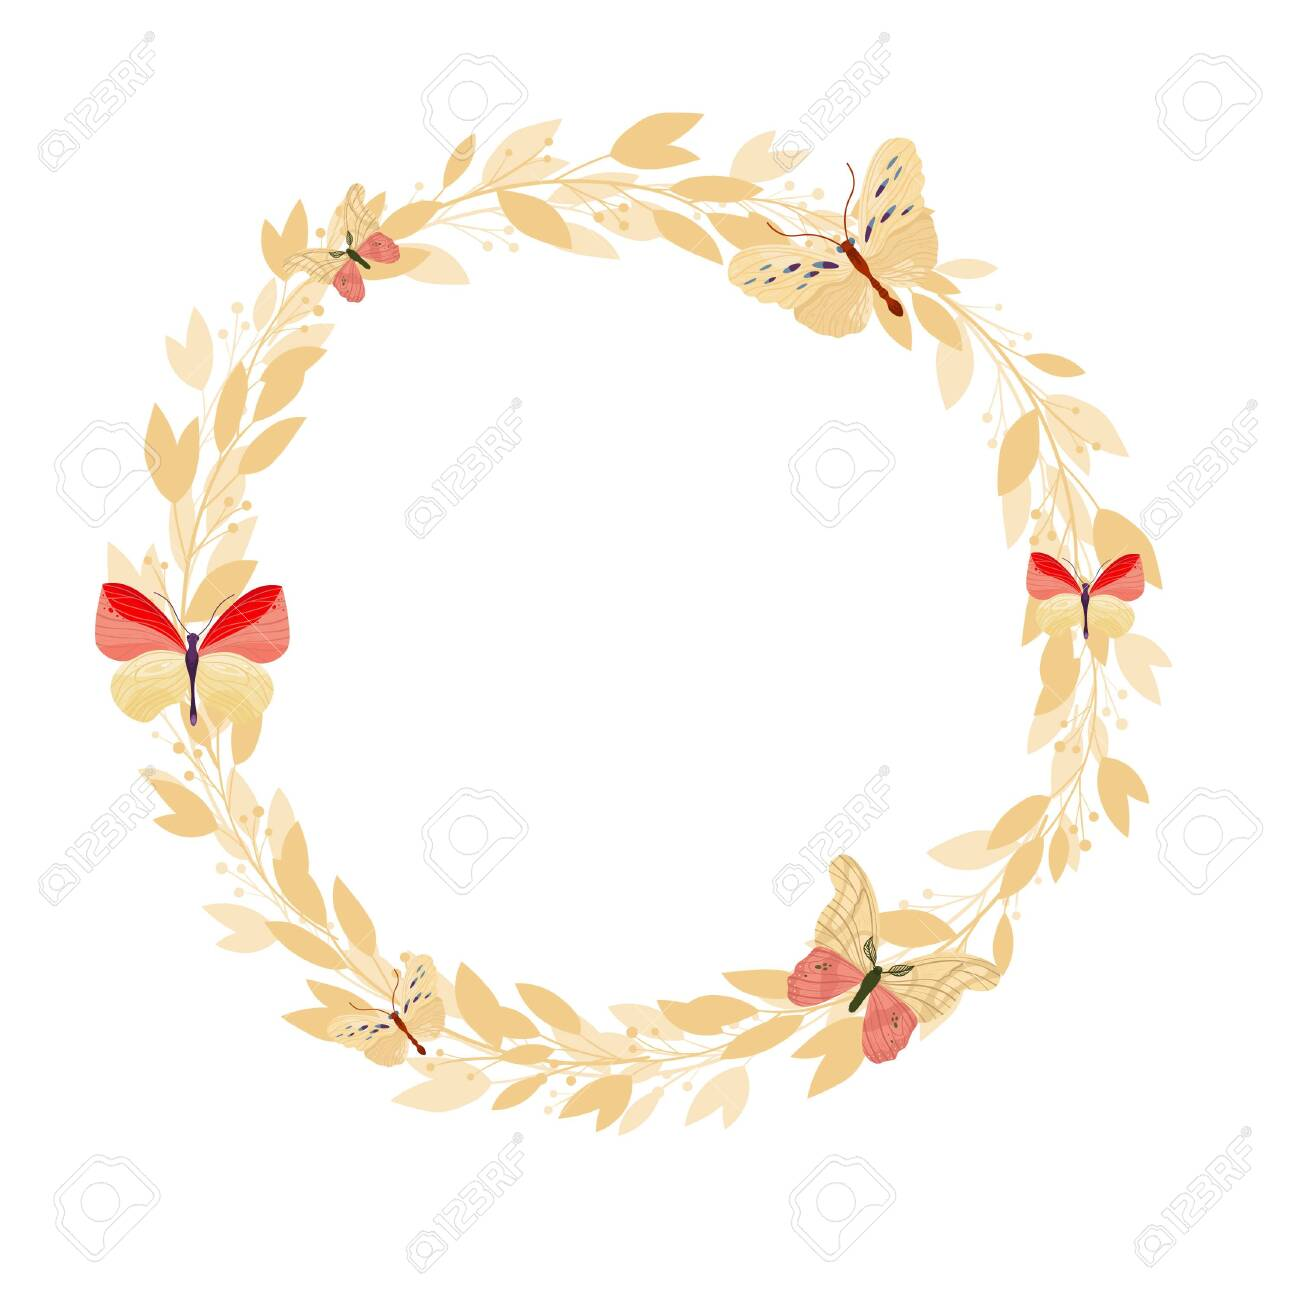 Vector floral frame on white background. Wreath with leaves and flowers. Bright colorful spring. - 138352715